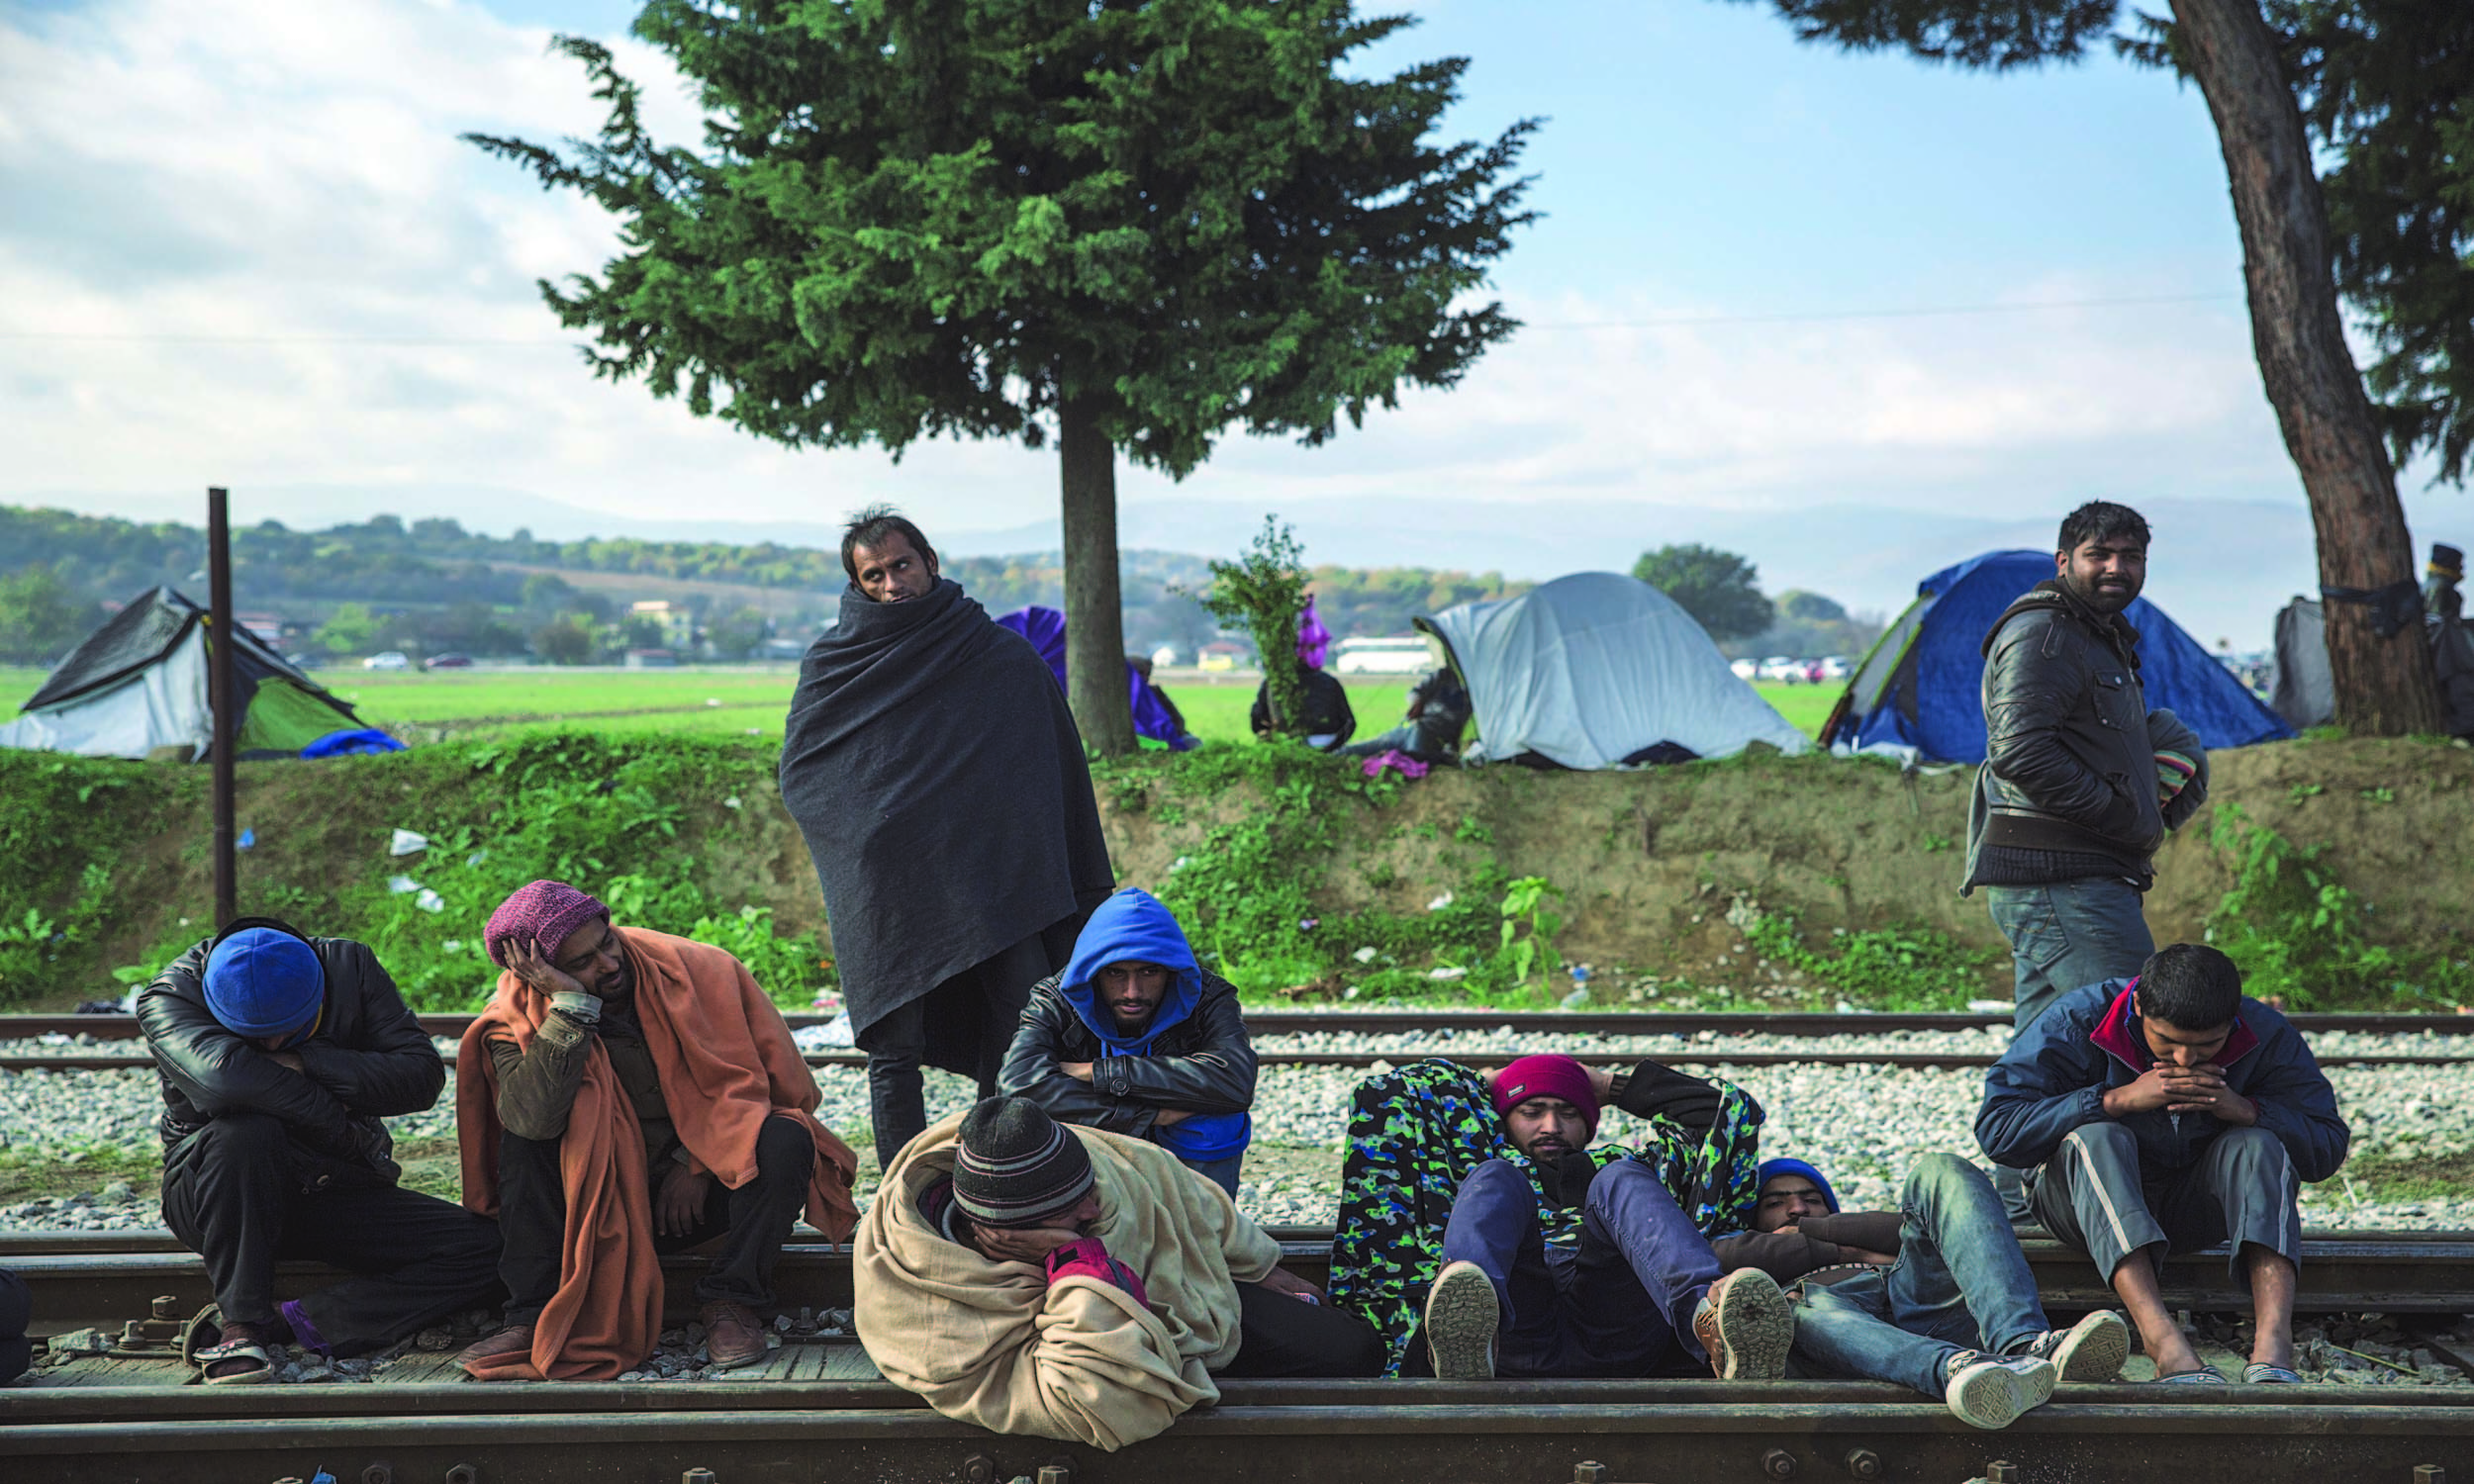 The perils of Pakistani migrants heading to Europe